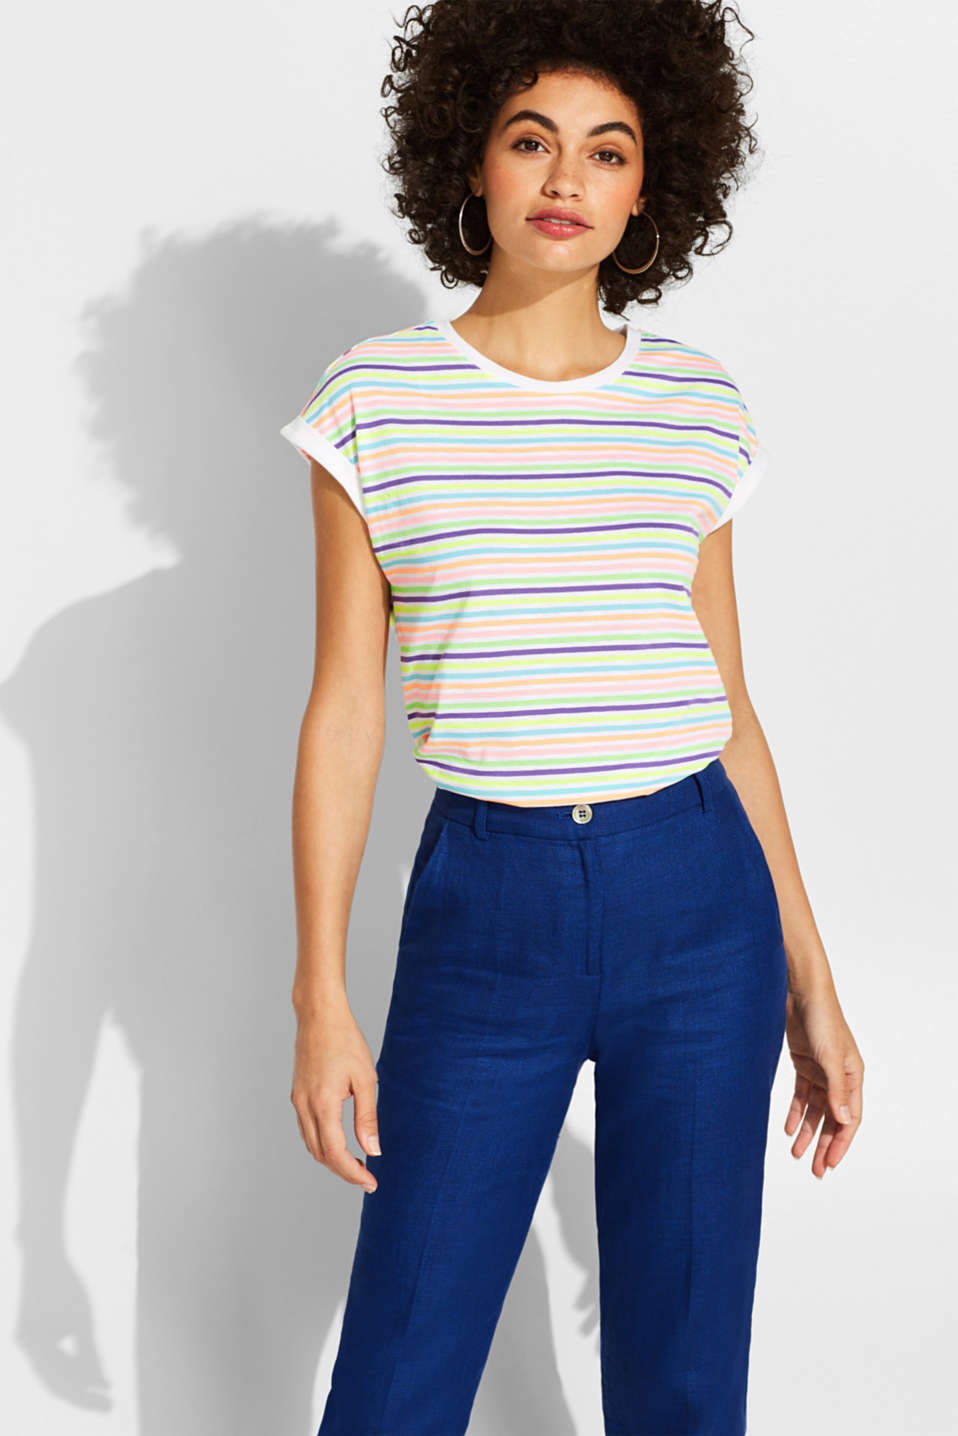 edc - T-shirt with multi-coloured stripes in neon